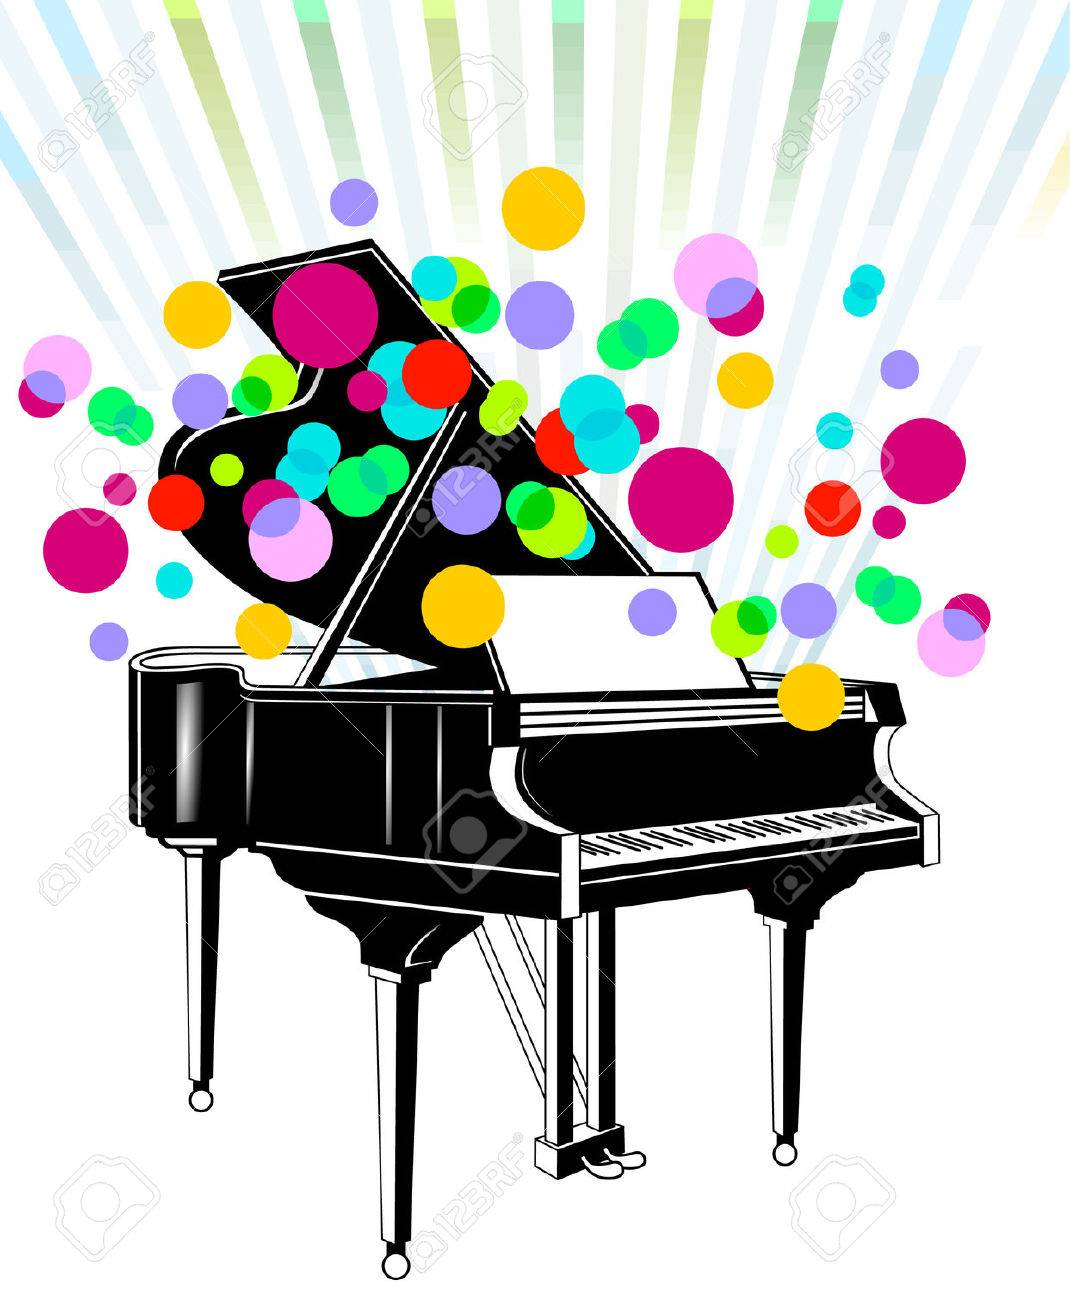 1070x1300 Grand Piano Images Amp Stock Pictures. Royalty Free Grand Piano